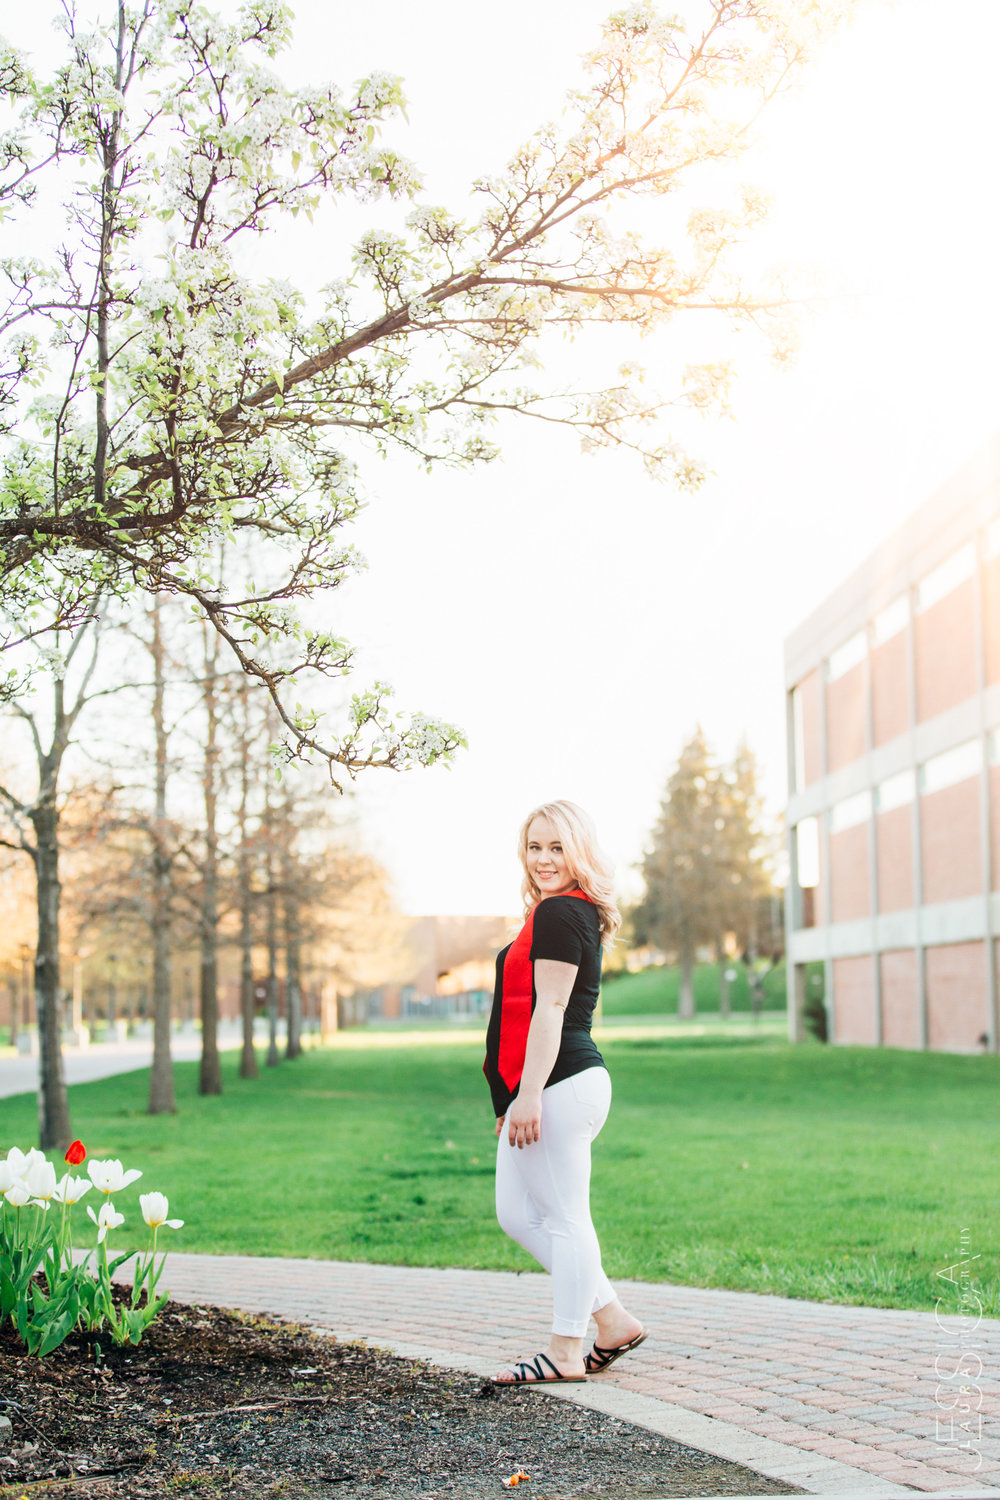 haley-web-ewu (23 of 64).jpg